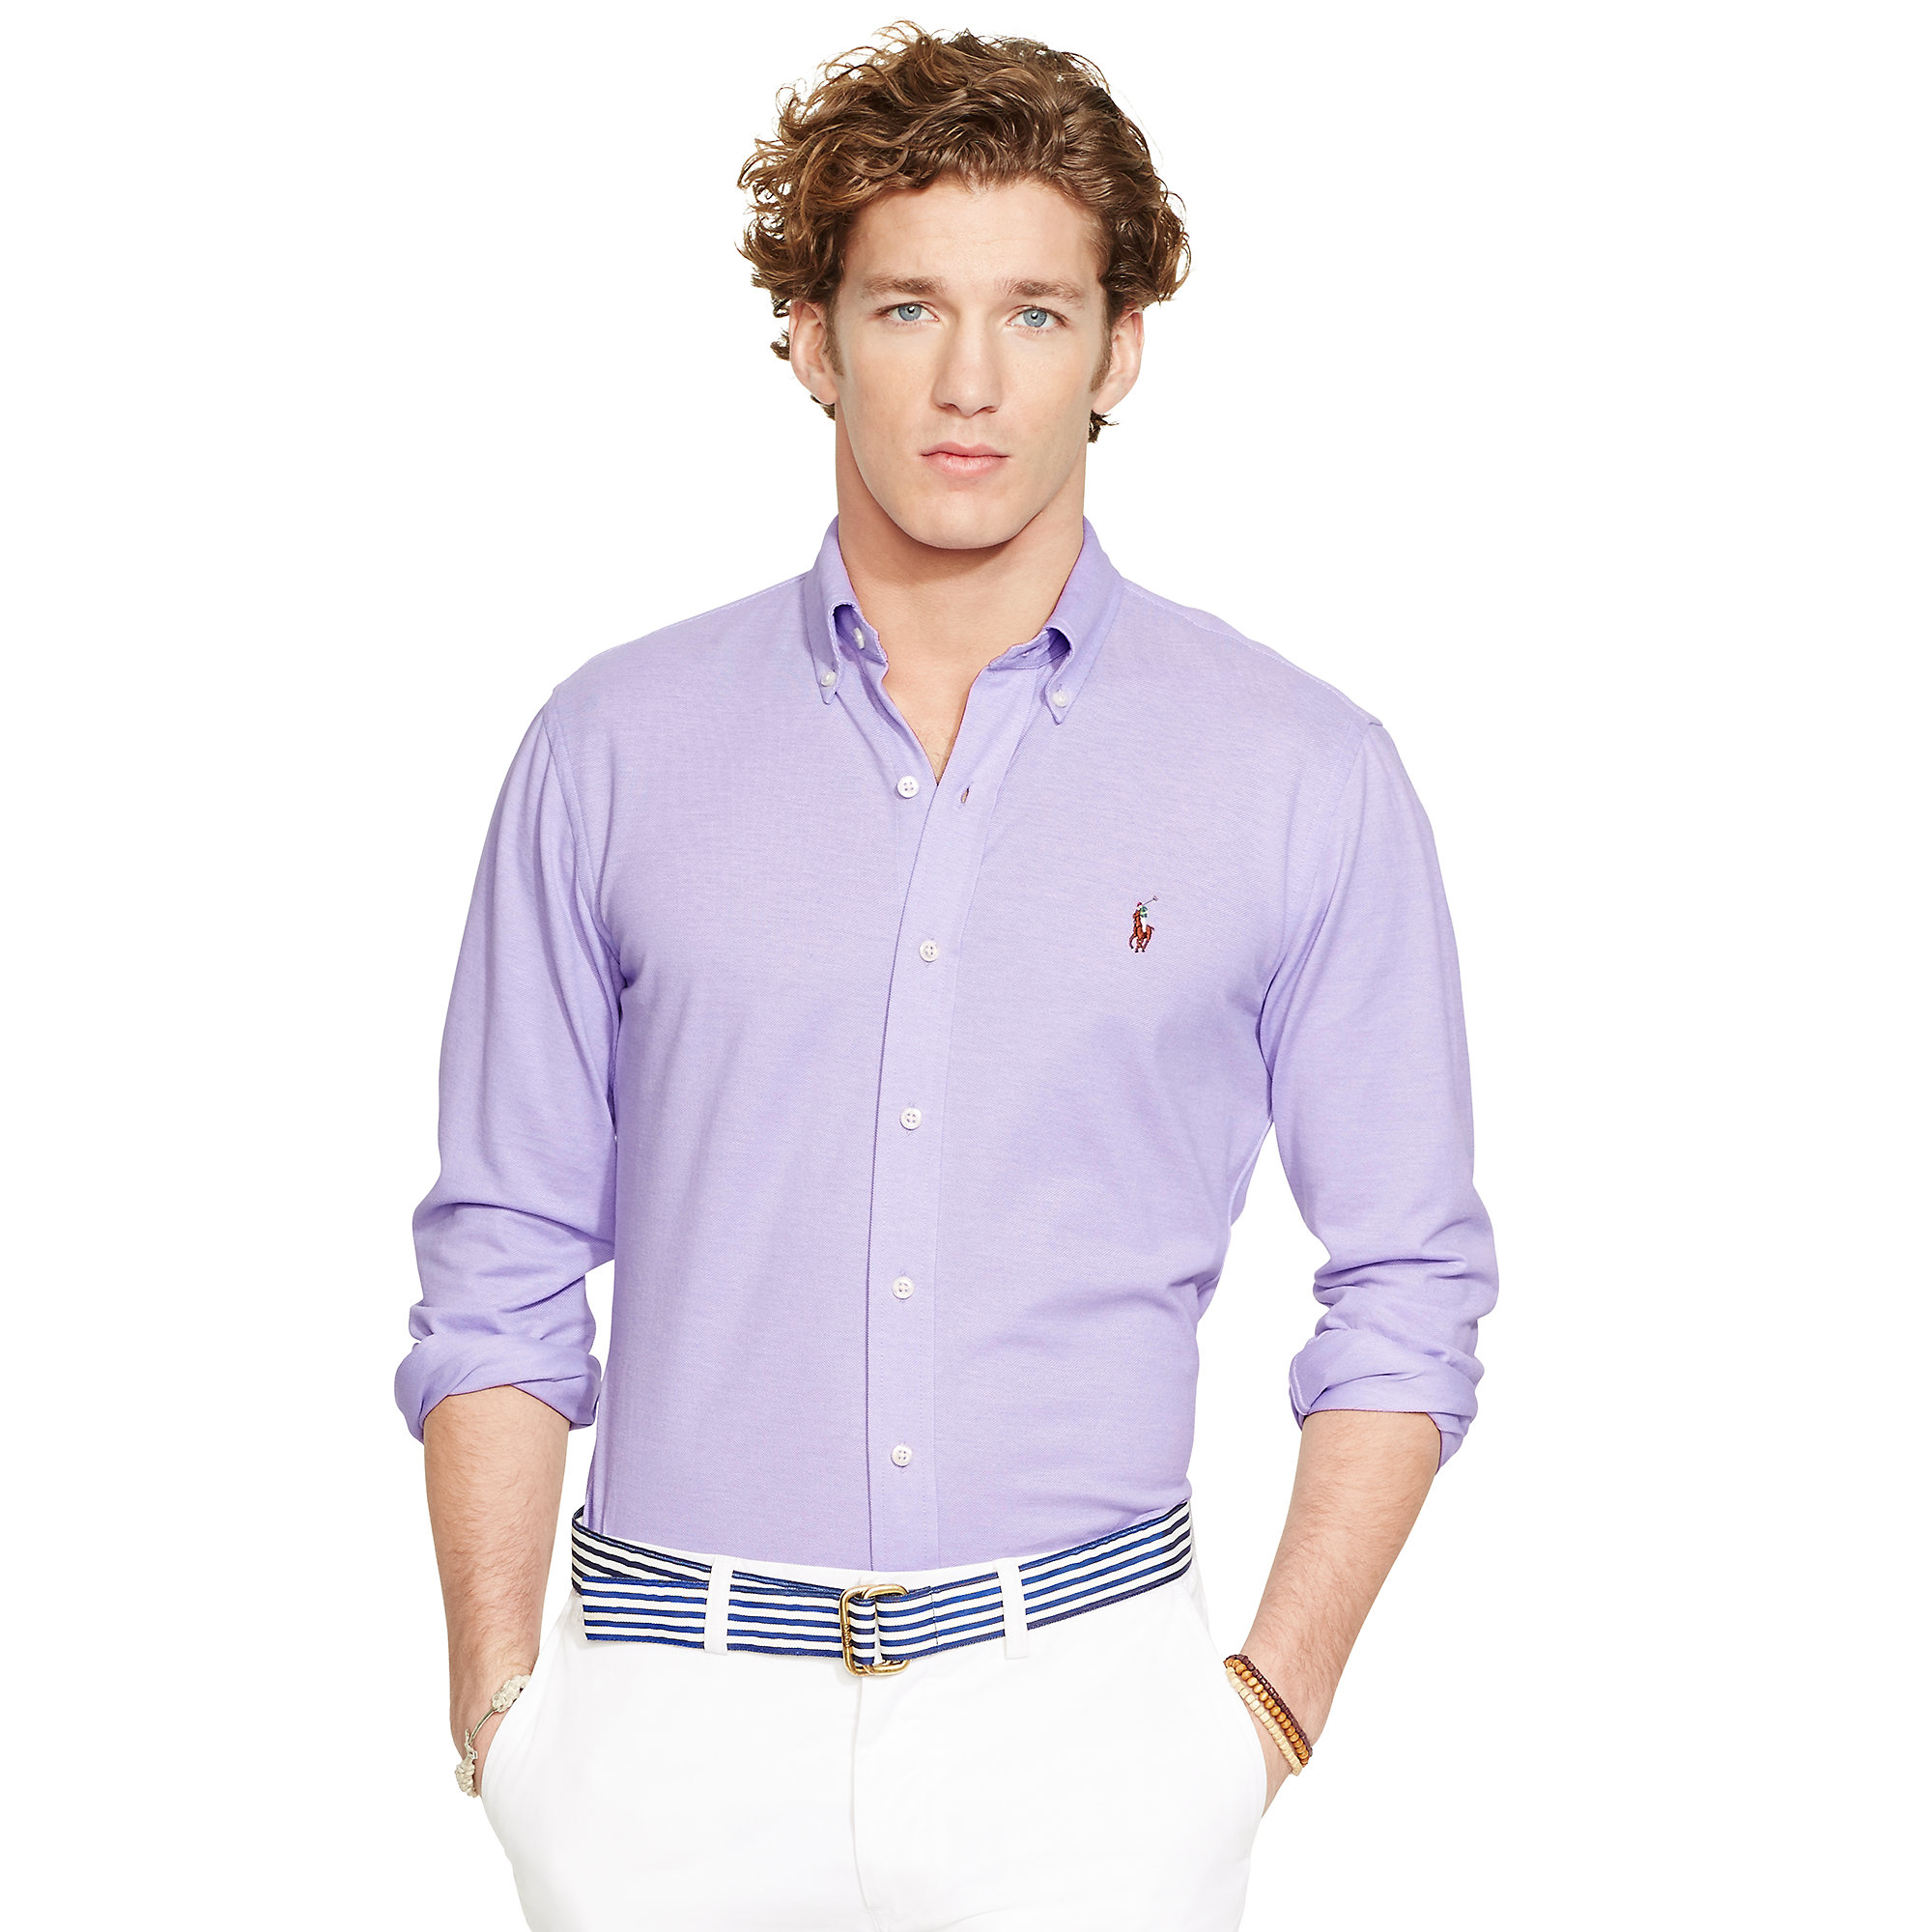 lyst polo ralph lauren knit oxford shirt in purple for men. Black Bedroom Furniture Sets. Home Design Ideas